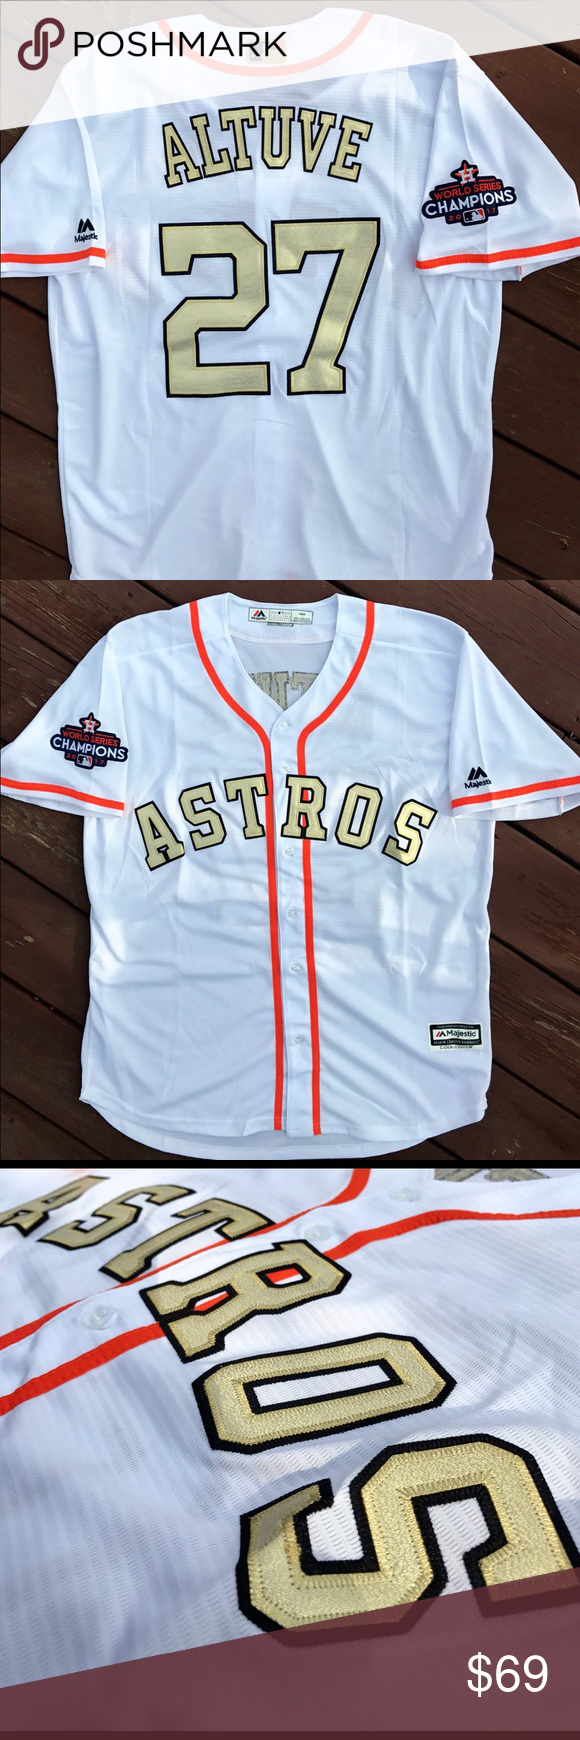 detailed look 4789f 5c163 Jose Altuve Houston Astros Gold Majestic Jersey XL Just ...